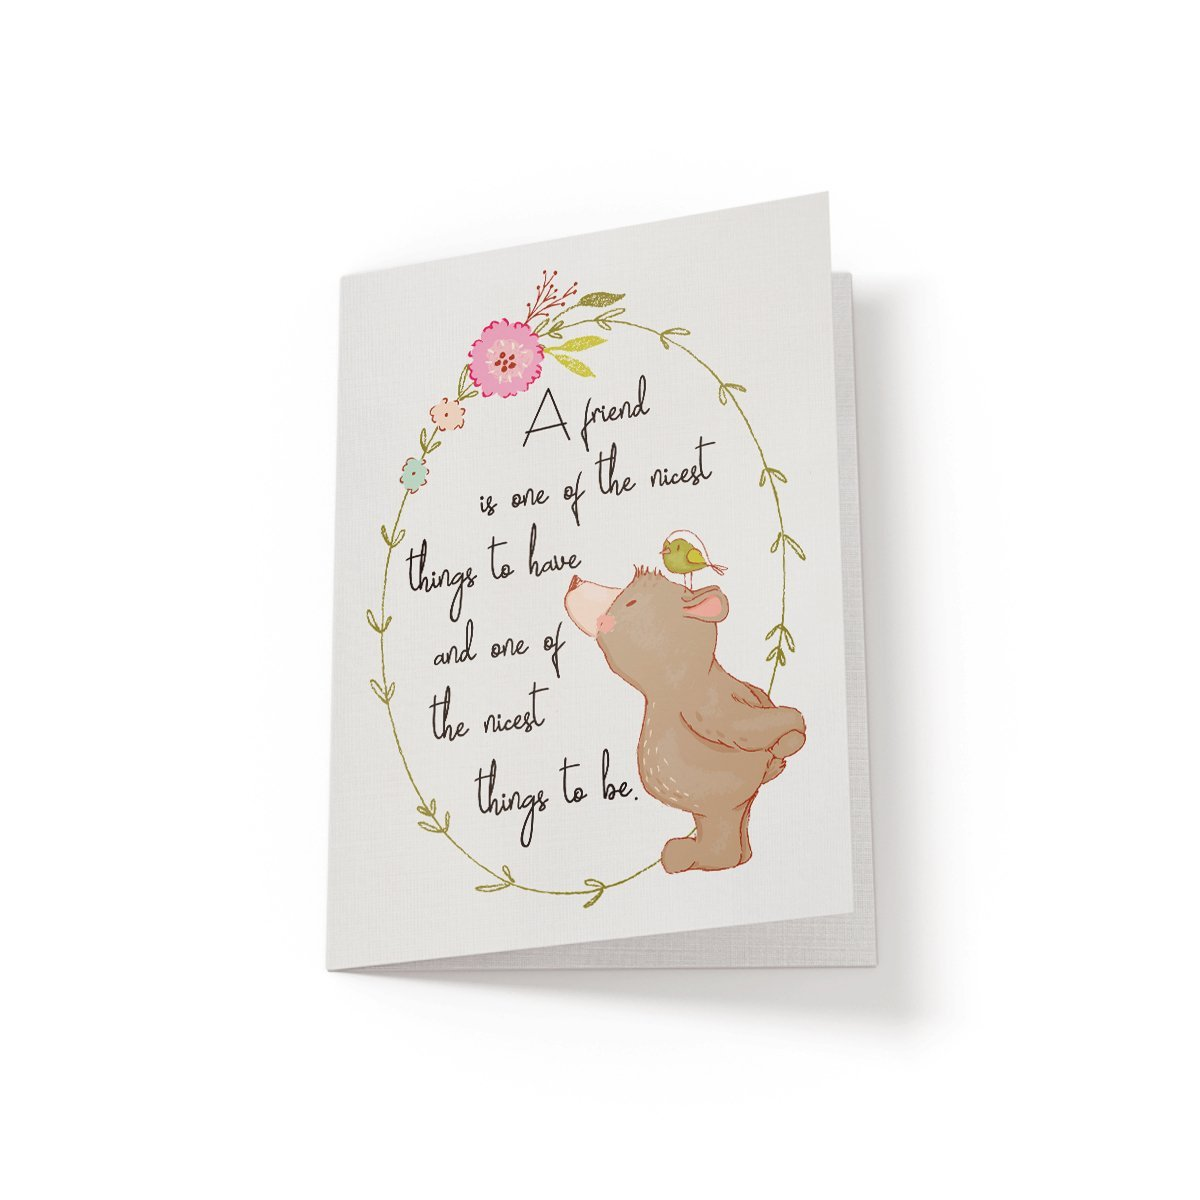 A friend is one of the nicest - Greeting Card - Netties Expressions